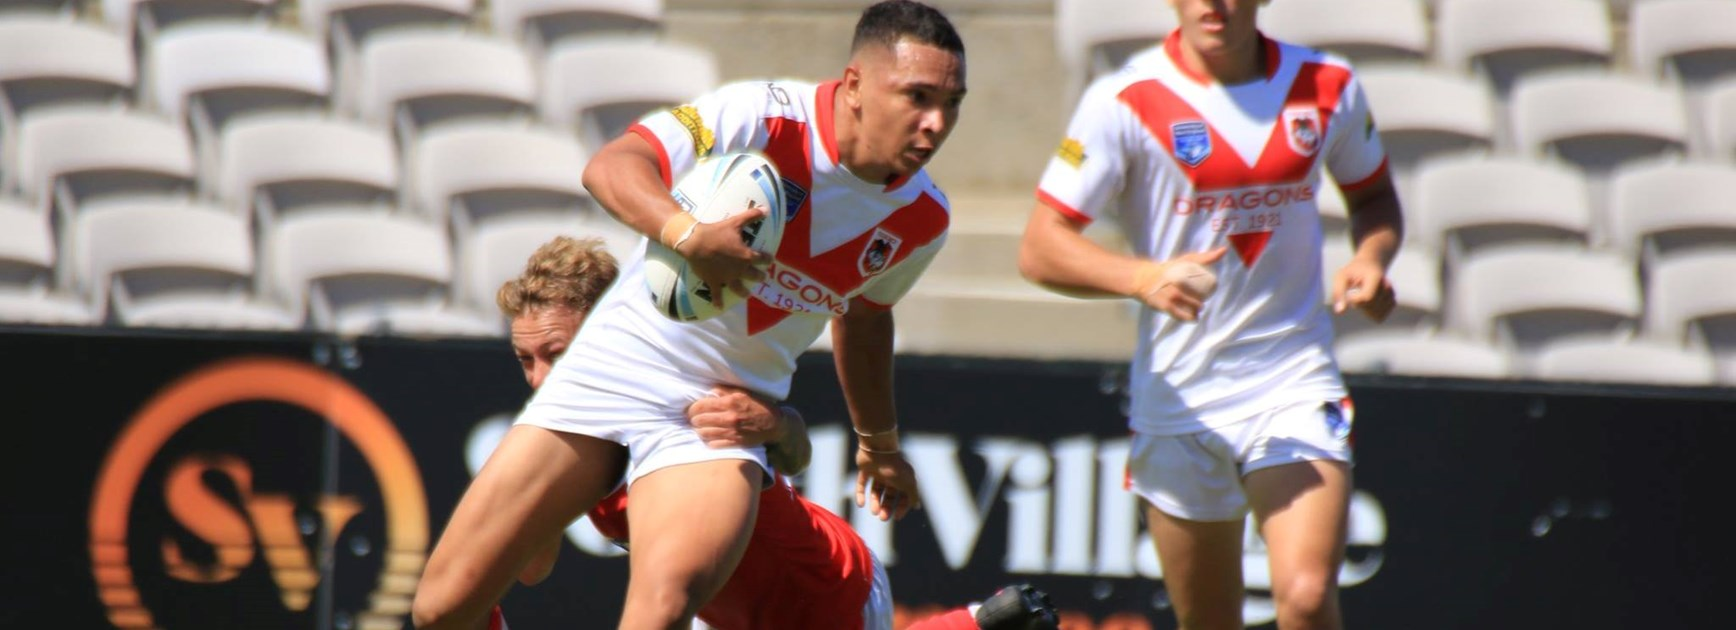 Son of a gun: CJ Mundine signs with Souths